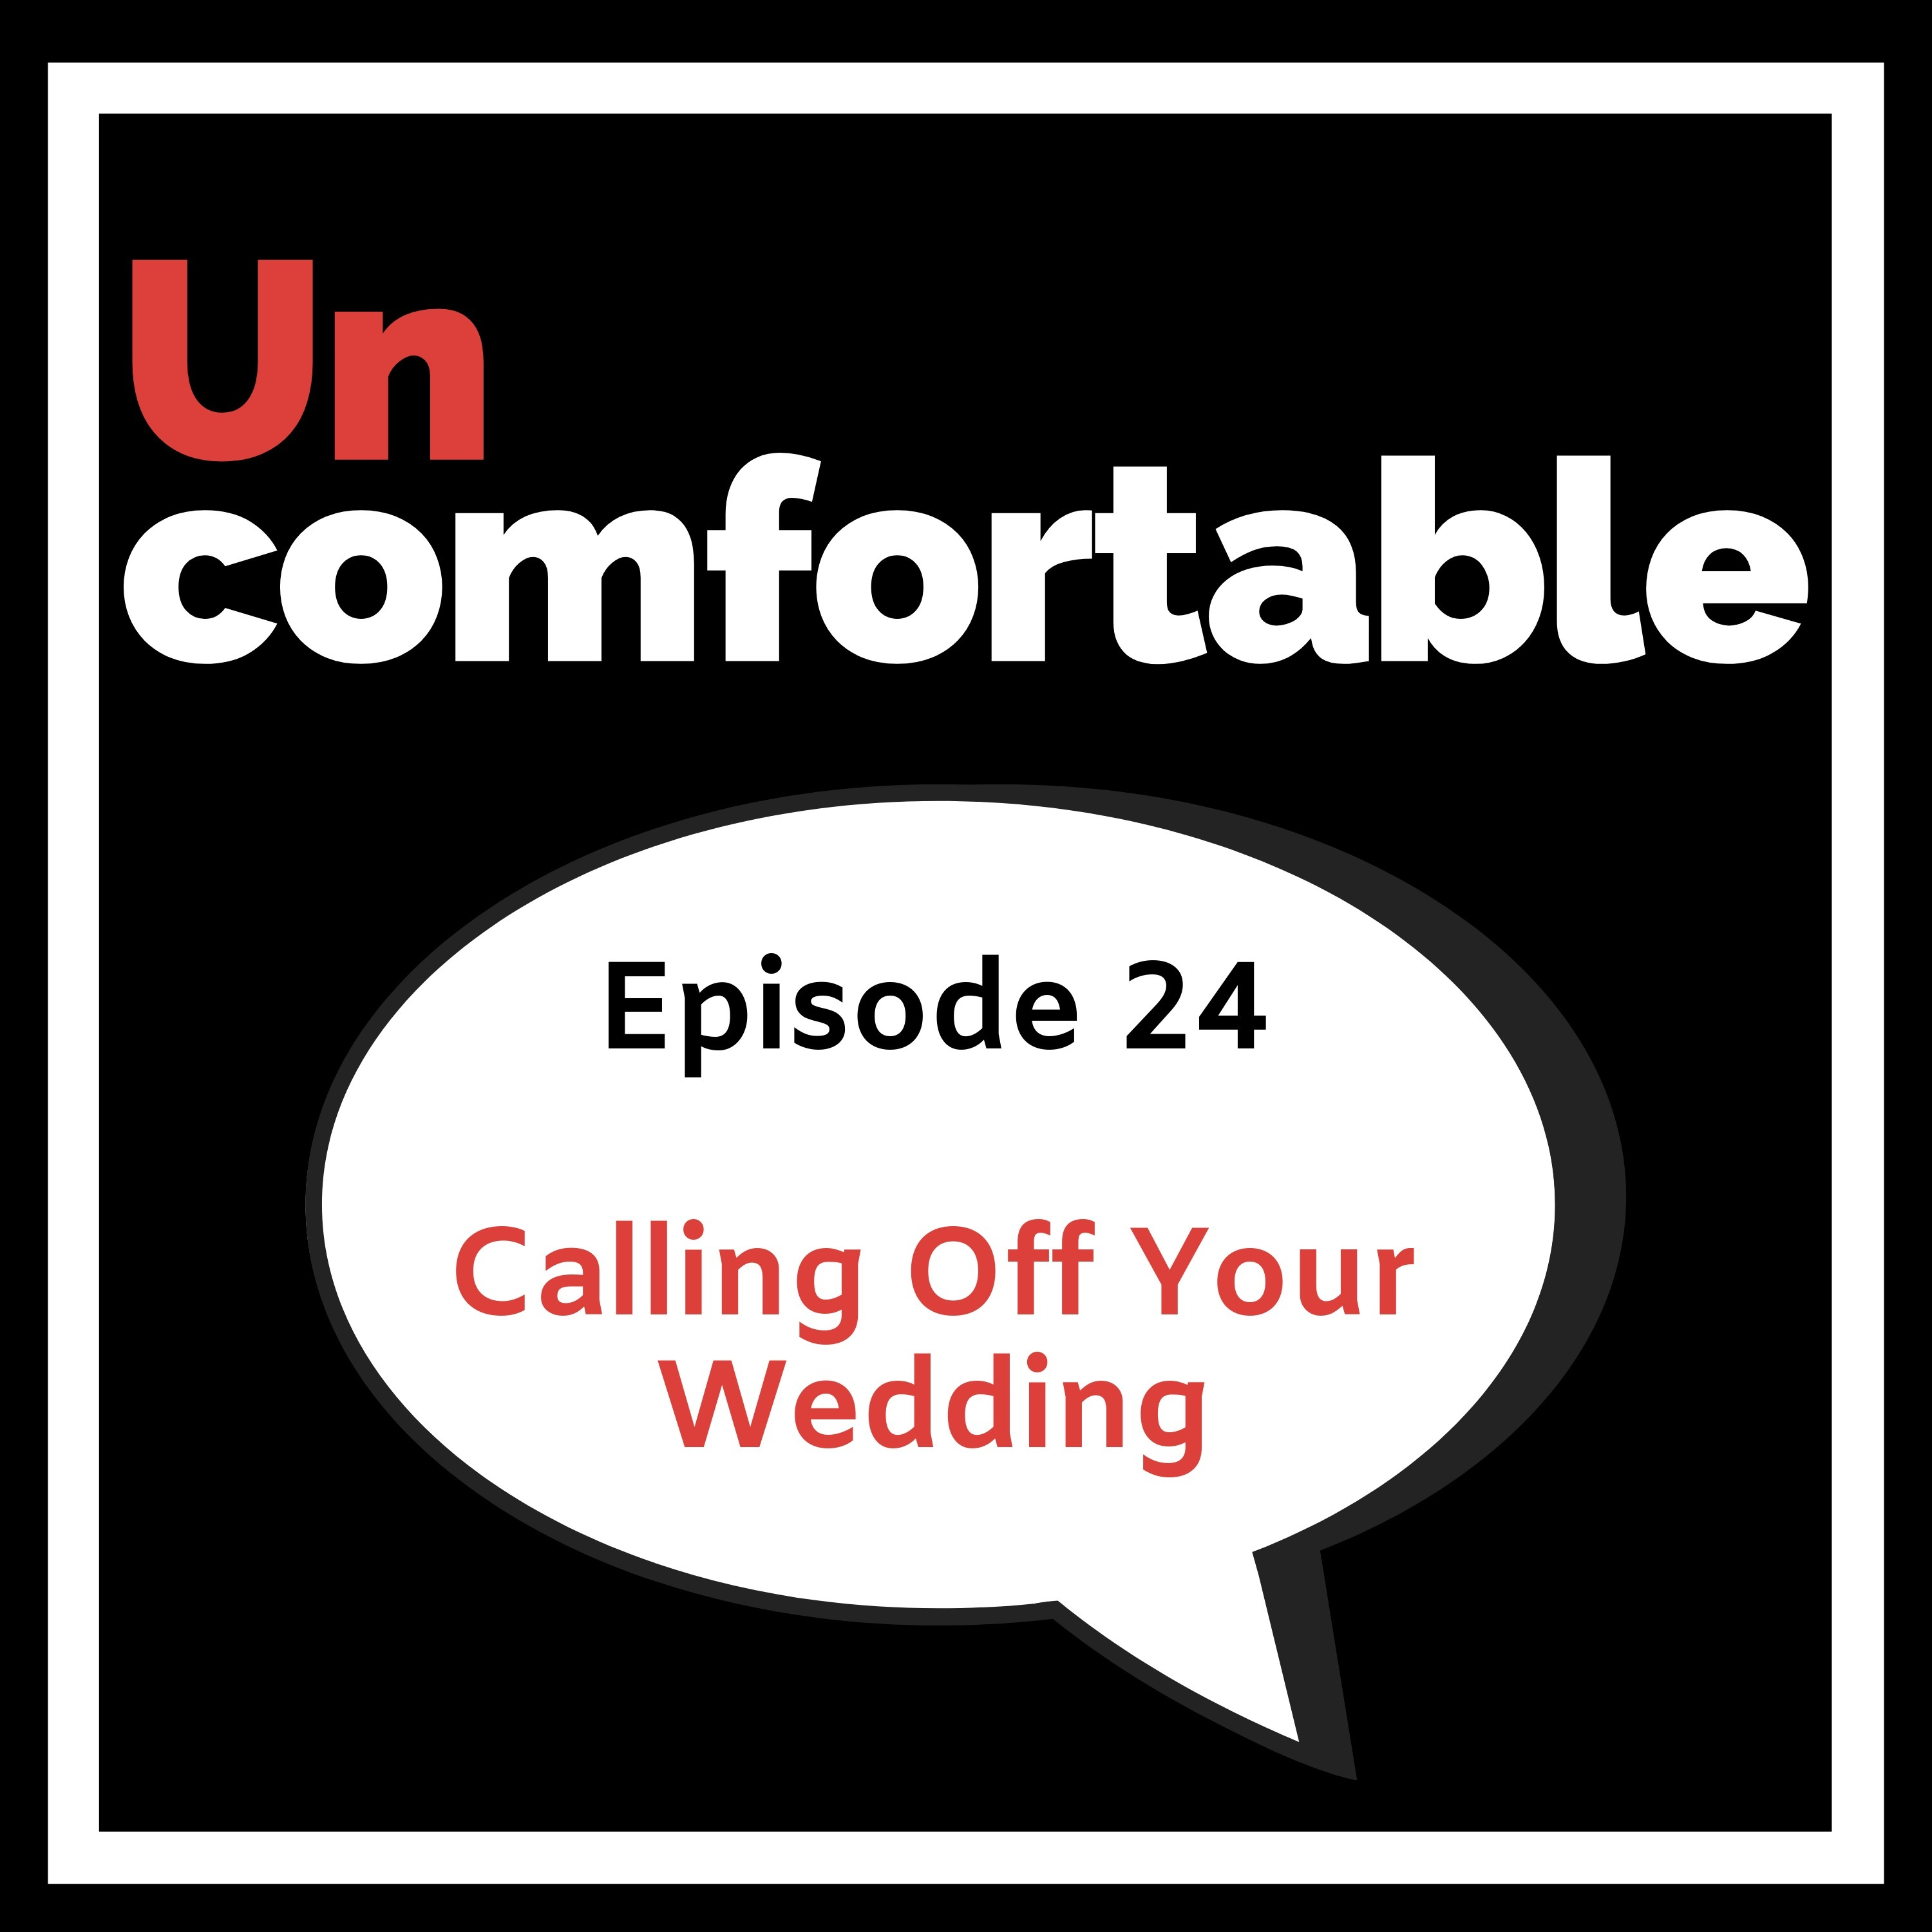 Episode 24 - Calling off your wedding